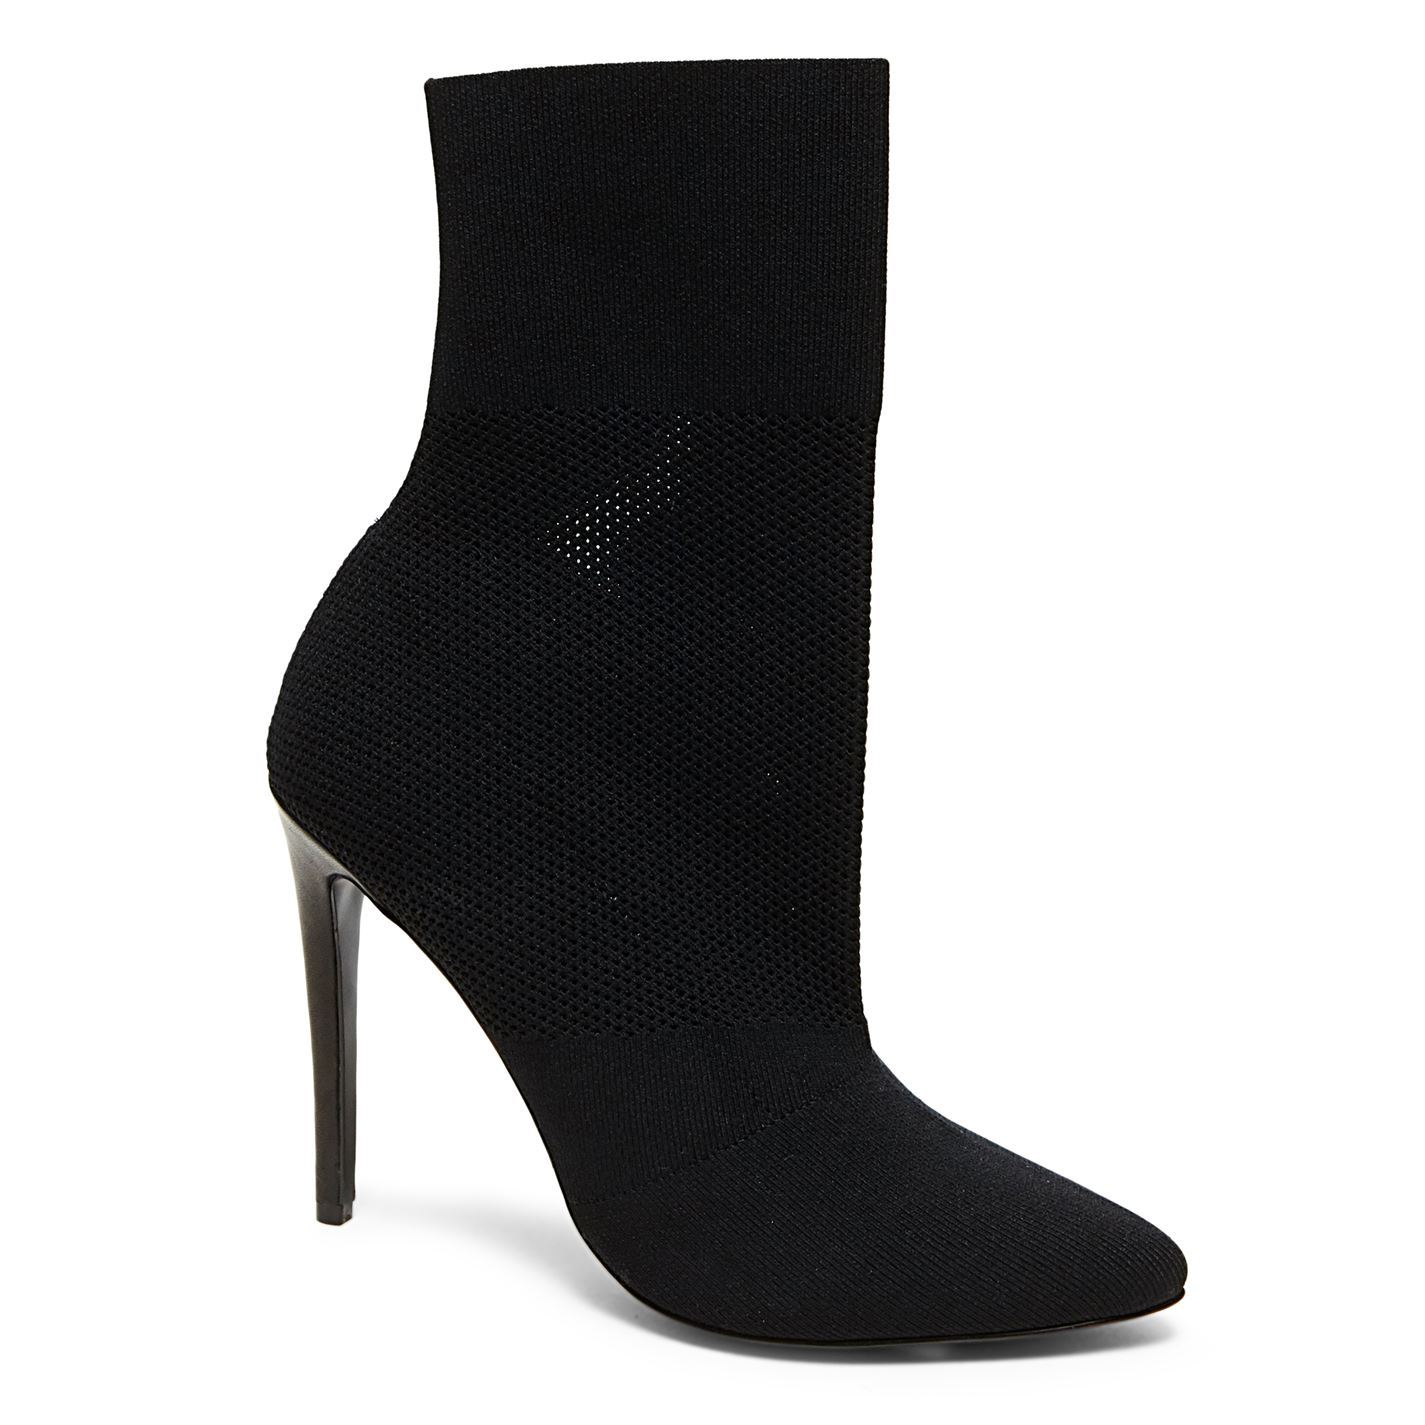 Steve-Madden-Womens-Century-Boots-Heeled-Ankle